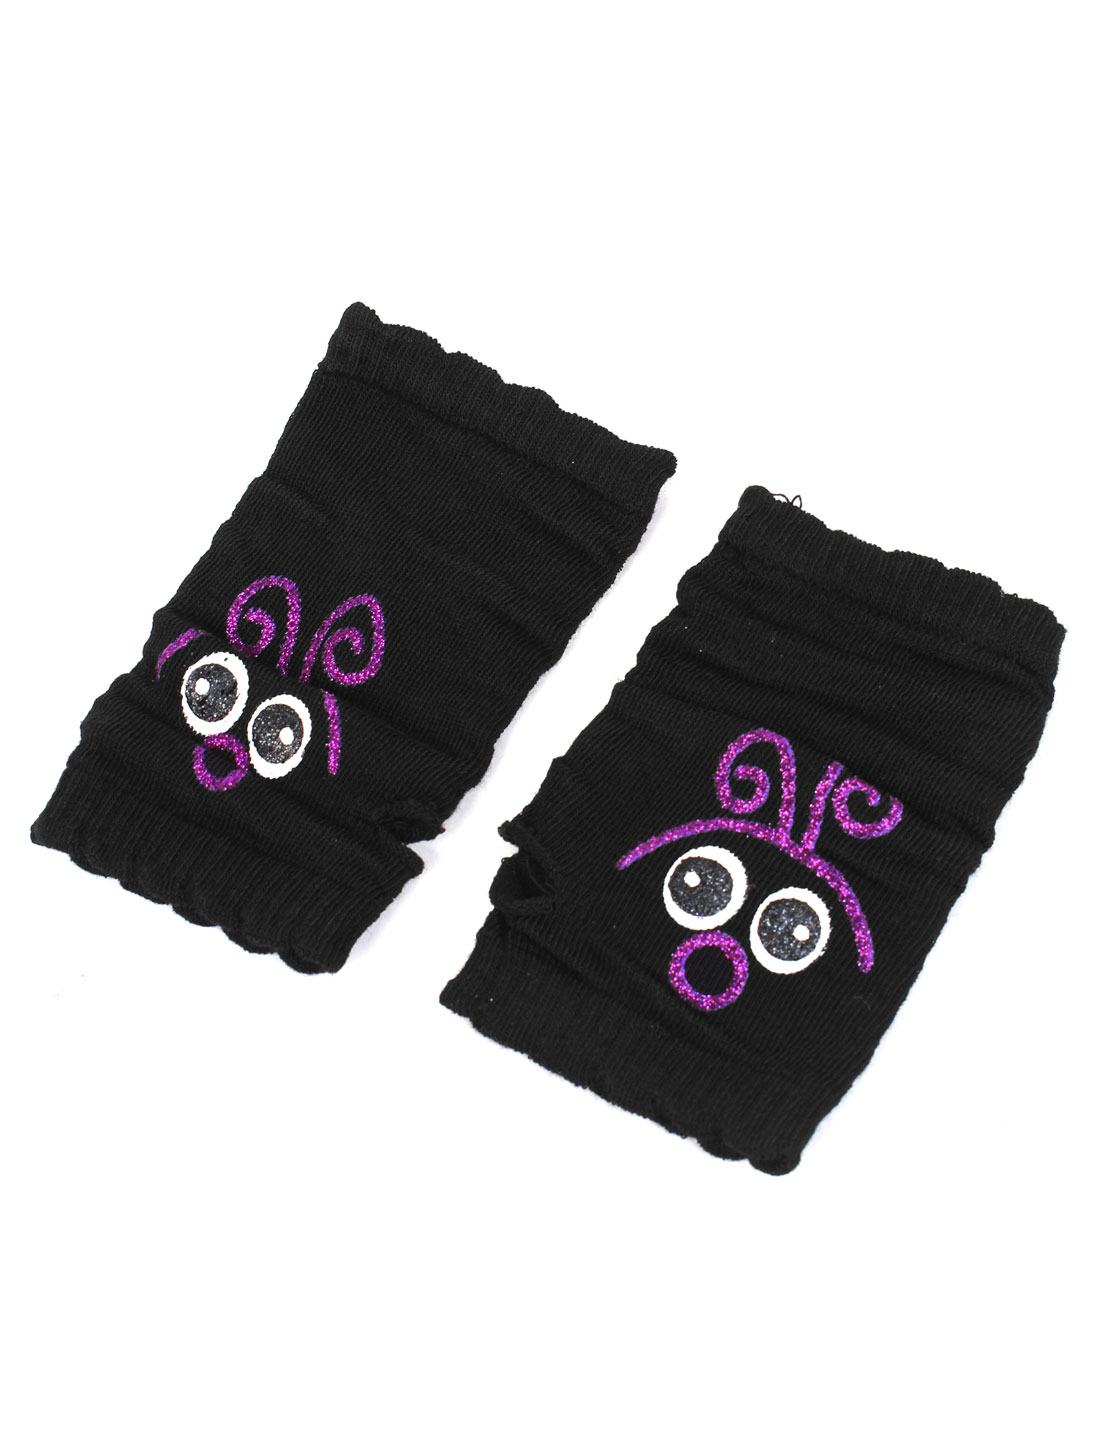 Woman Pair Thumb Hole Cartoon Expression Pattern Winter Wrist Fingerless Gloves Black